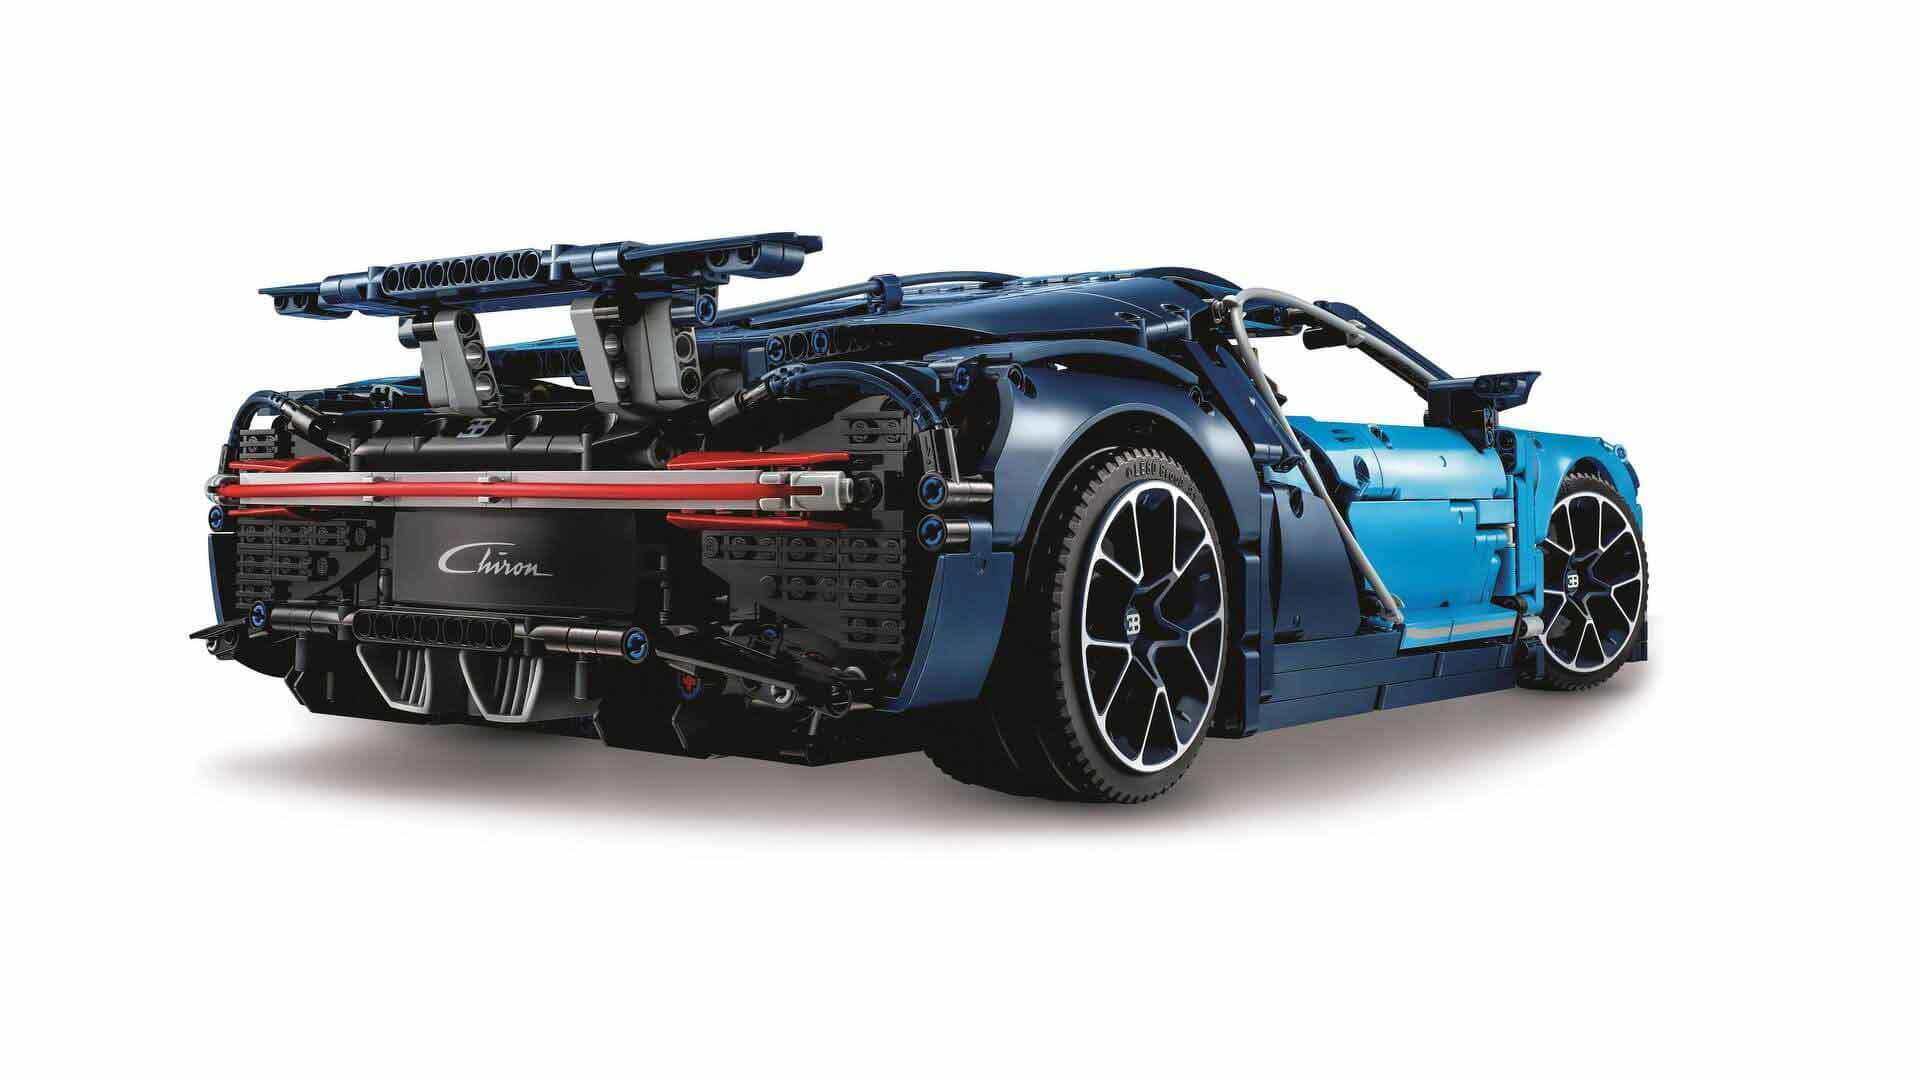 Lego Technic Bugatti Chiron Revealed With 3 599 Pieces Including Movable Engine Parts